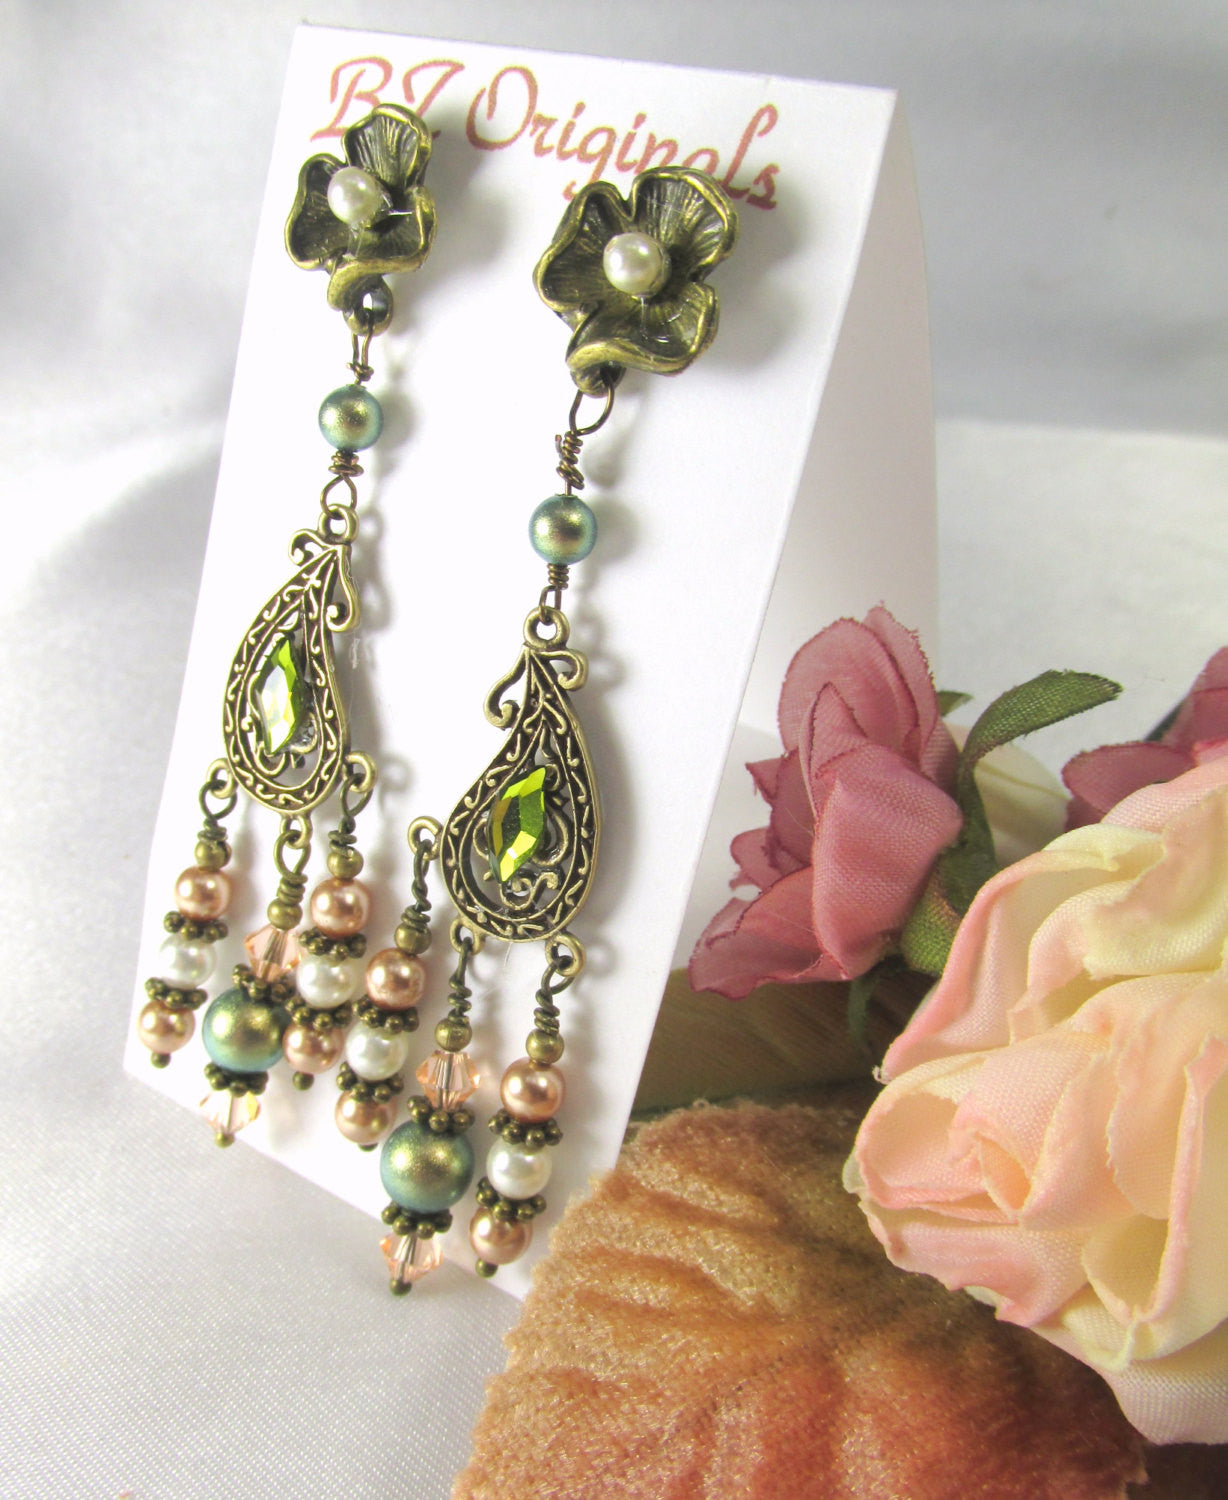 Antique Brass Post Chandelier Earrings with Swarovski Pearls and Crystals in Olive Green, Ivory Cream, Bronze Pearl and Light Peach - Odyssey Creations